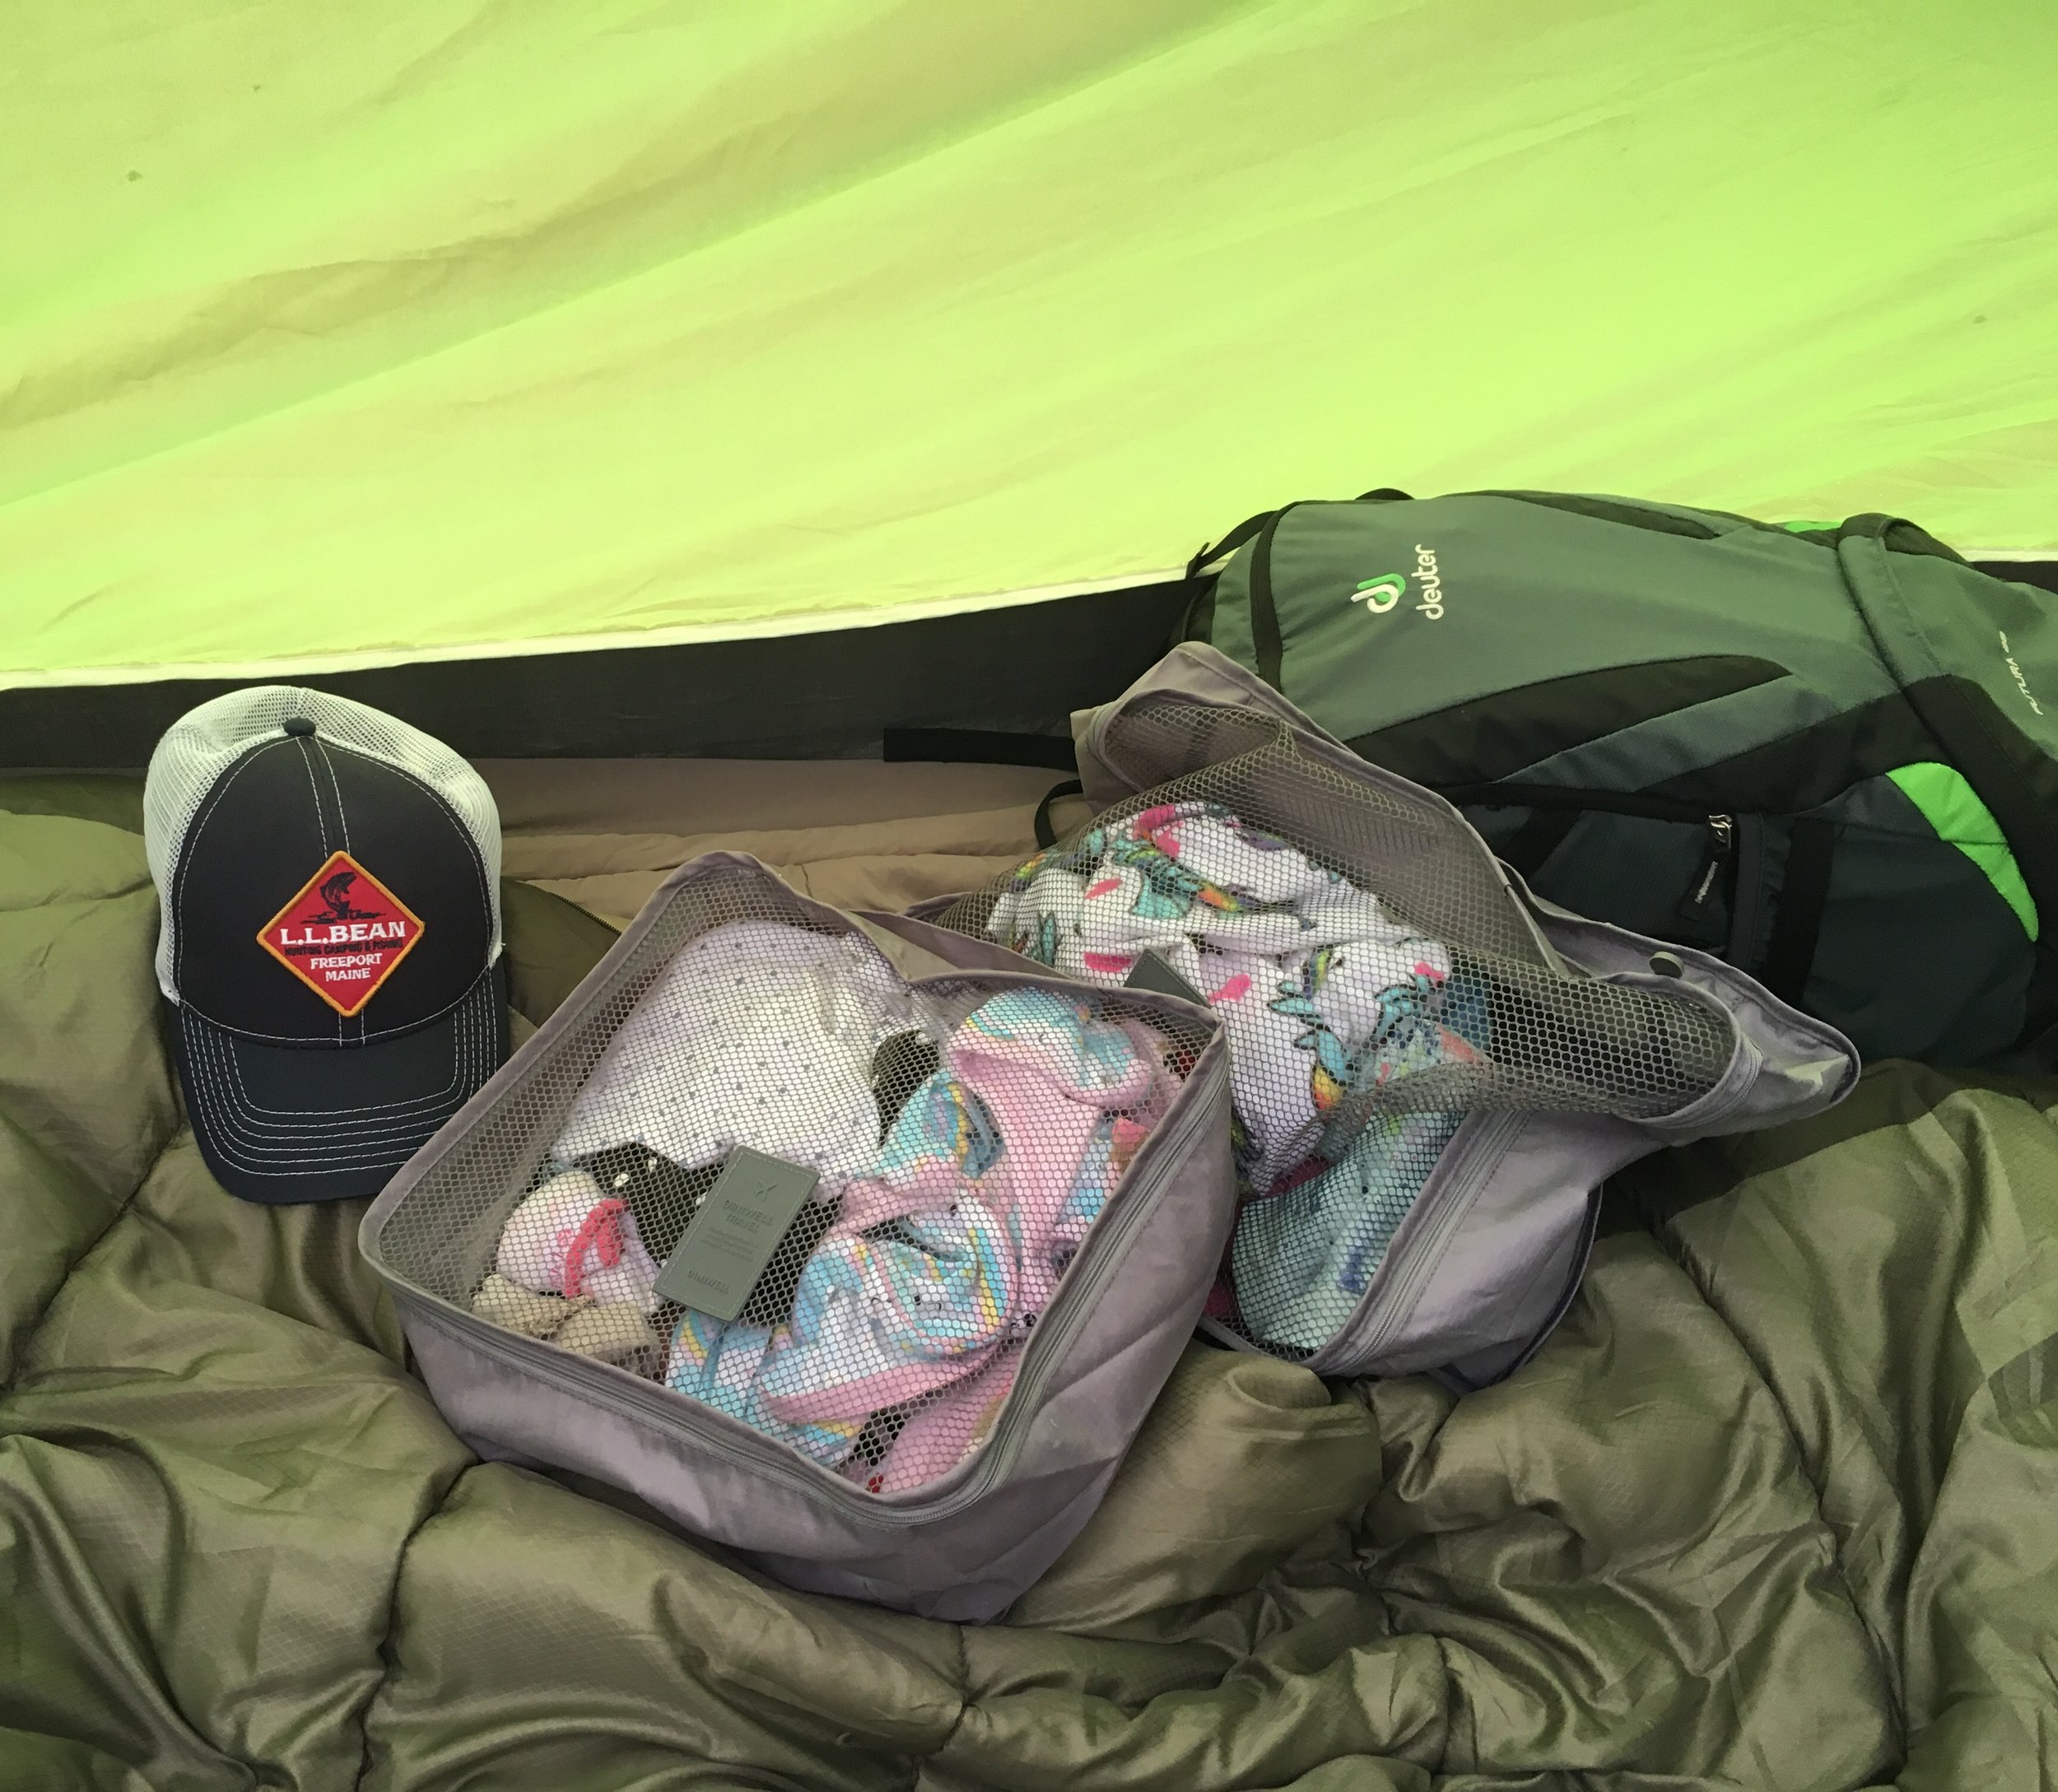 Camping with Kids Pro Tip:  Use packing cubes to keep everyone's clothes organized and easy to find.